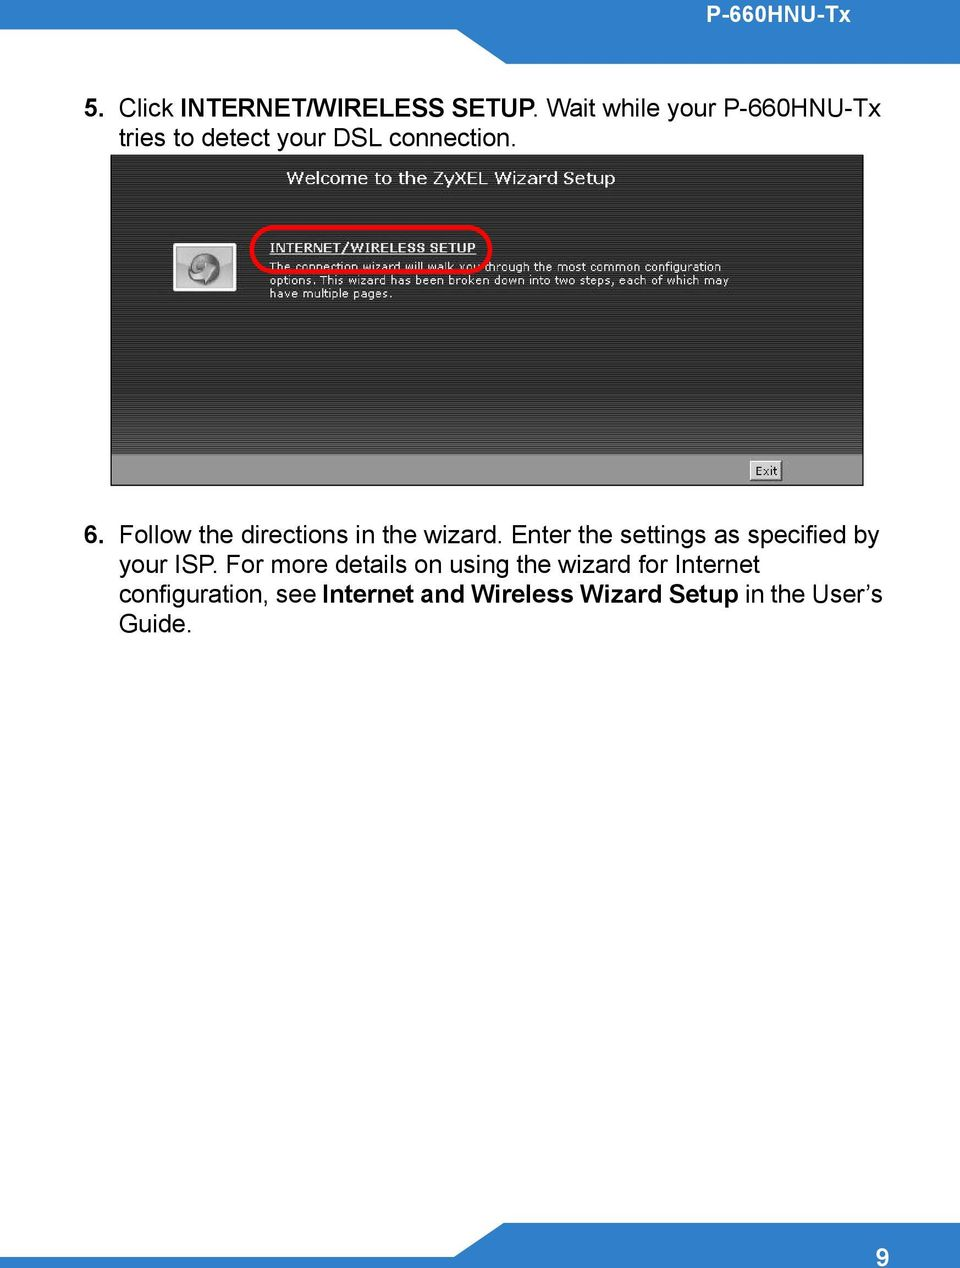 Follow the directions in the wizard. Enter the settings as specified by your ISP.